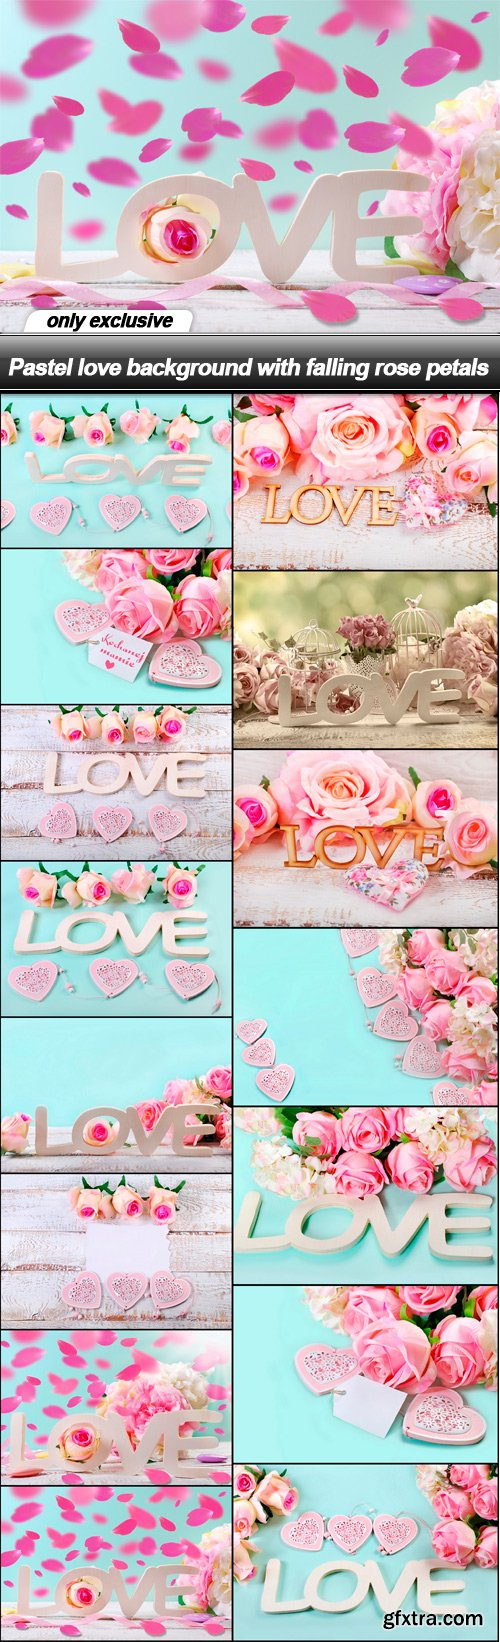 Pastel love background with falling rose petals - 15 UHQ JPEG